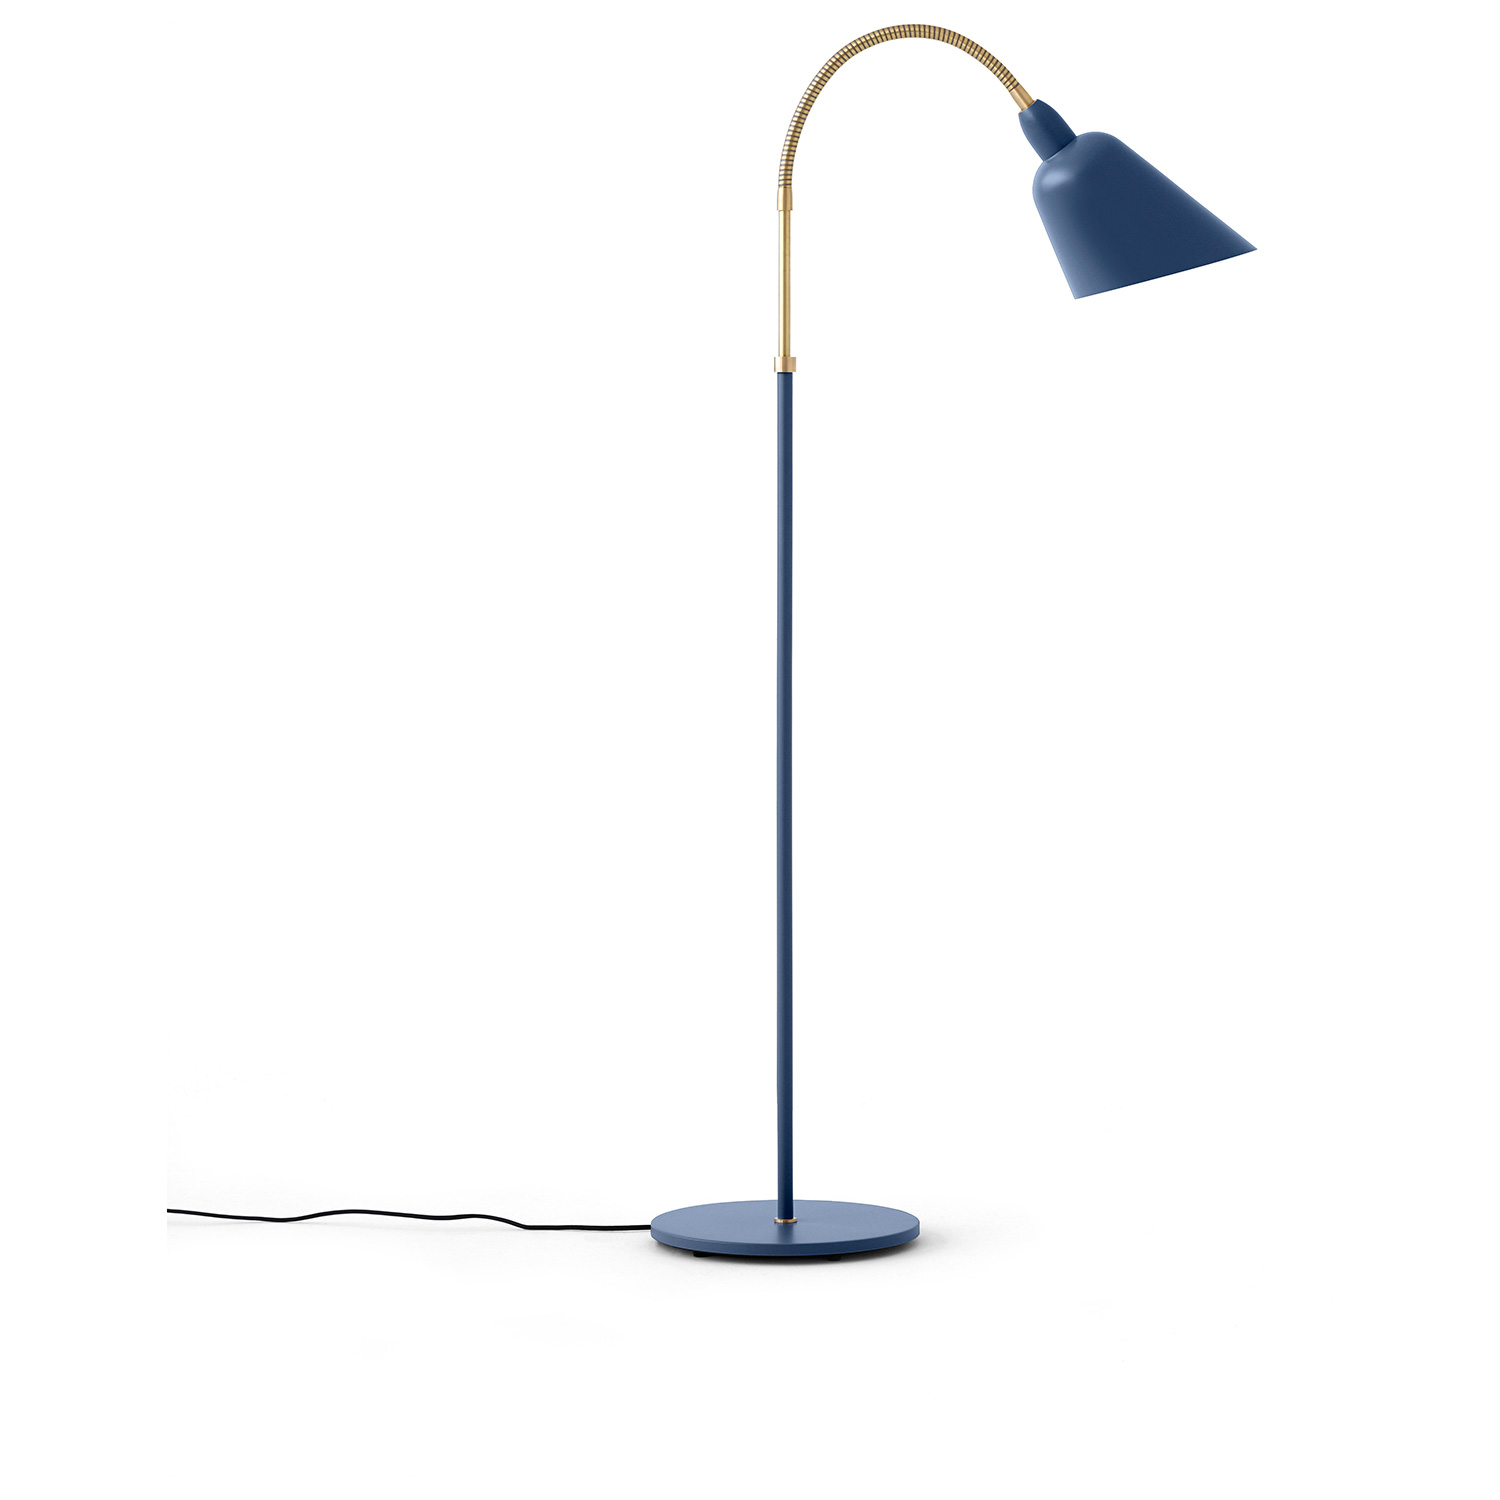 Bilde av &Tradition-Bellevue Gulvlampe AJ7, Thunder Blue/Messing